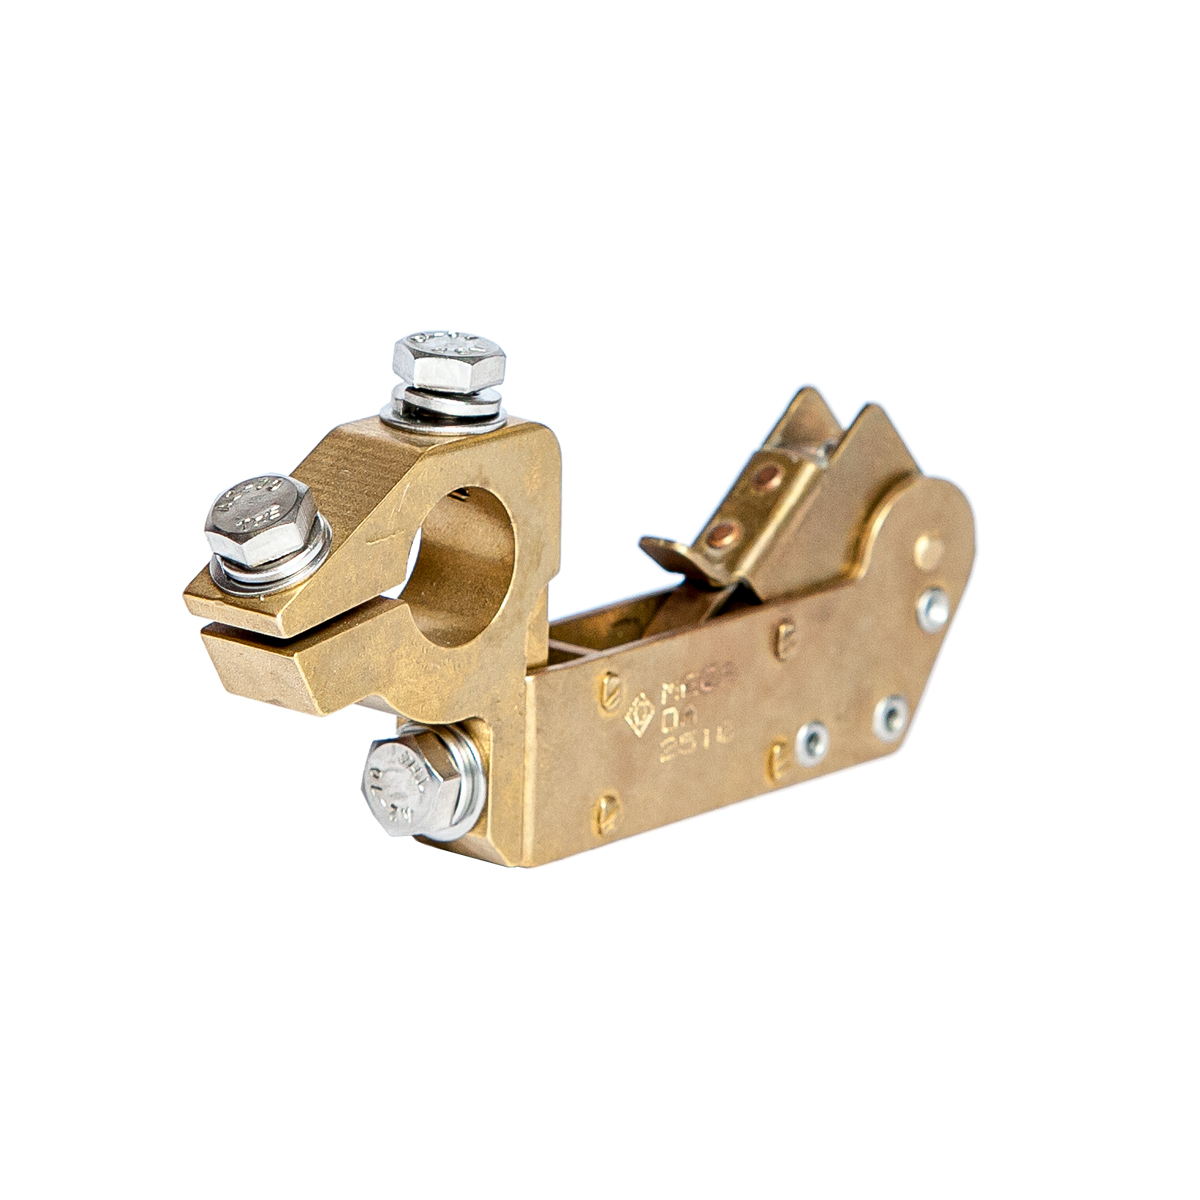 http://Product%20image%20of%20Shaft%20grounding%20Holders%20/%20Produktbilde%20av%20Shaft%20grounding%20Holdere%20Børsteholder